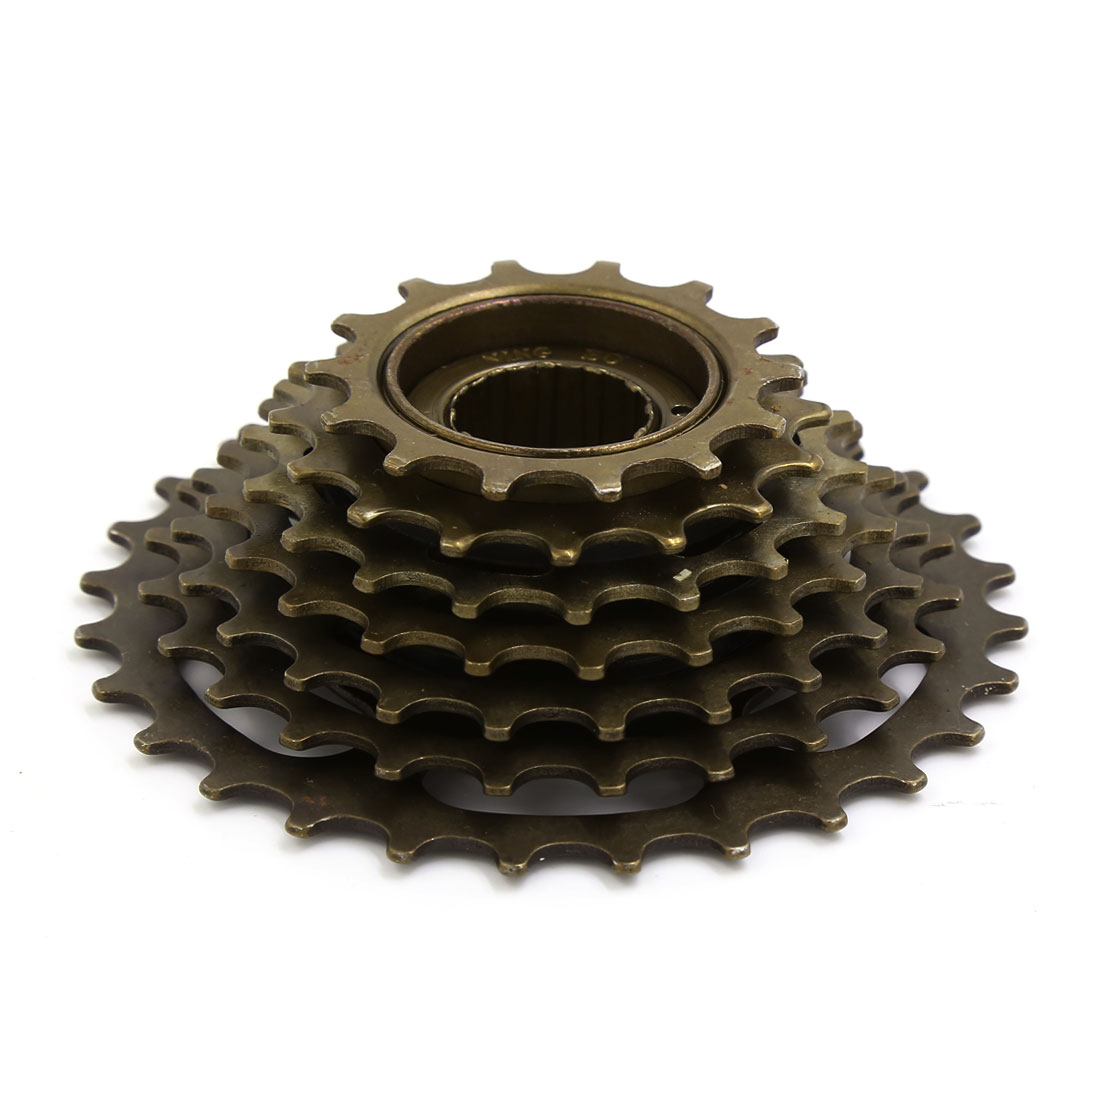 Scooter Bicycle Mountain Bike Metal 7 Speed Threaded Wheel Sprocket Freewheel